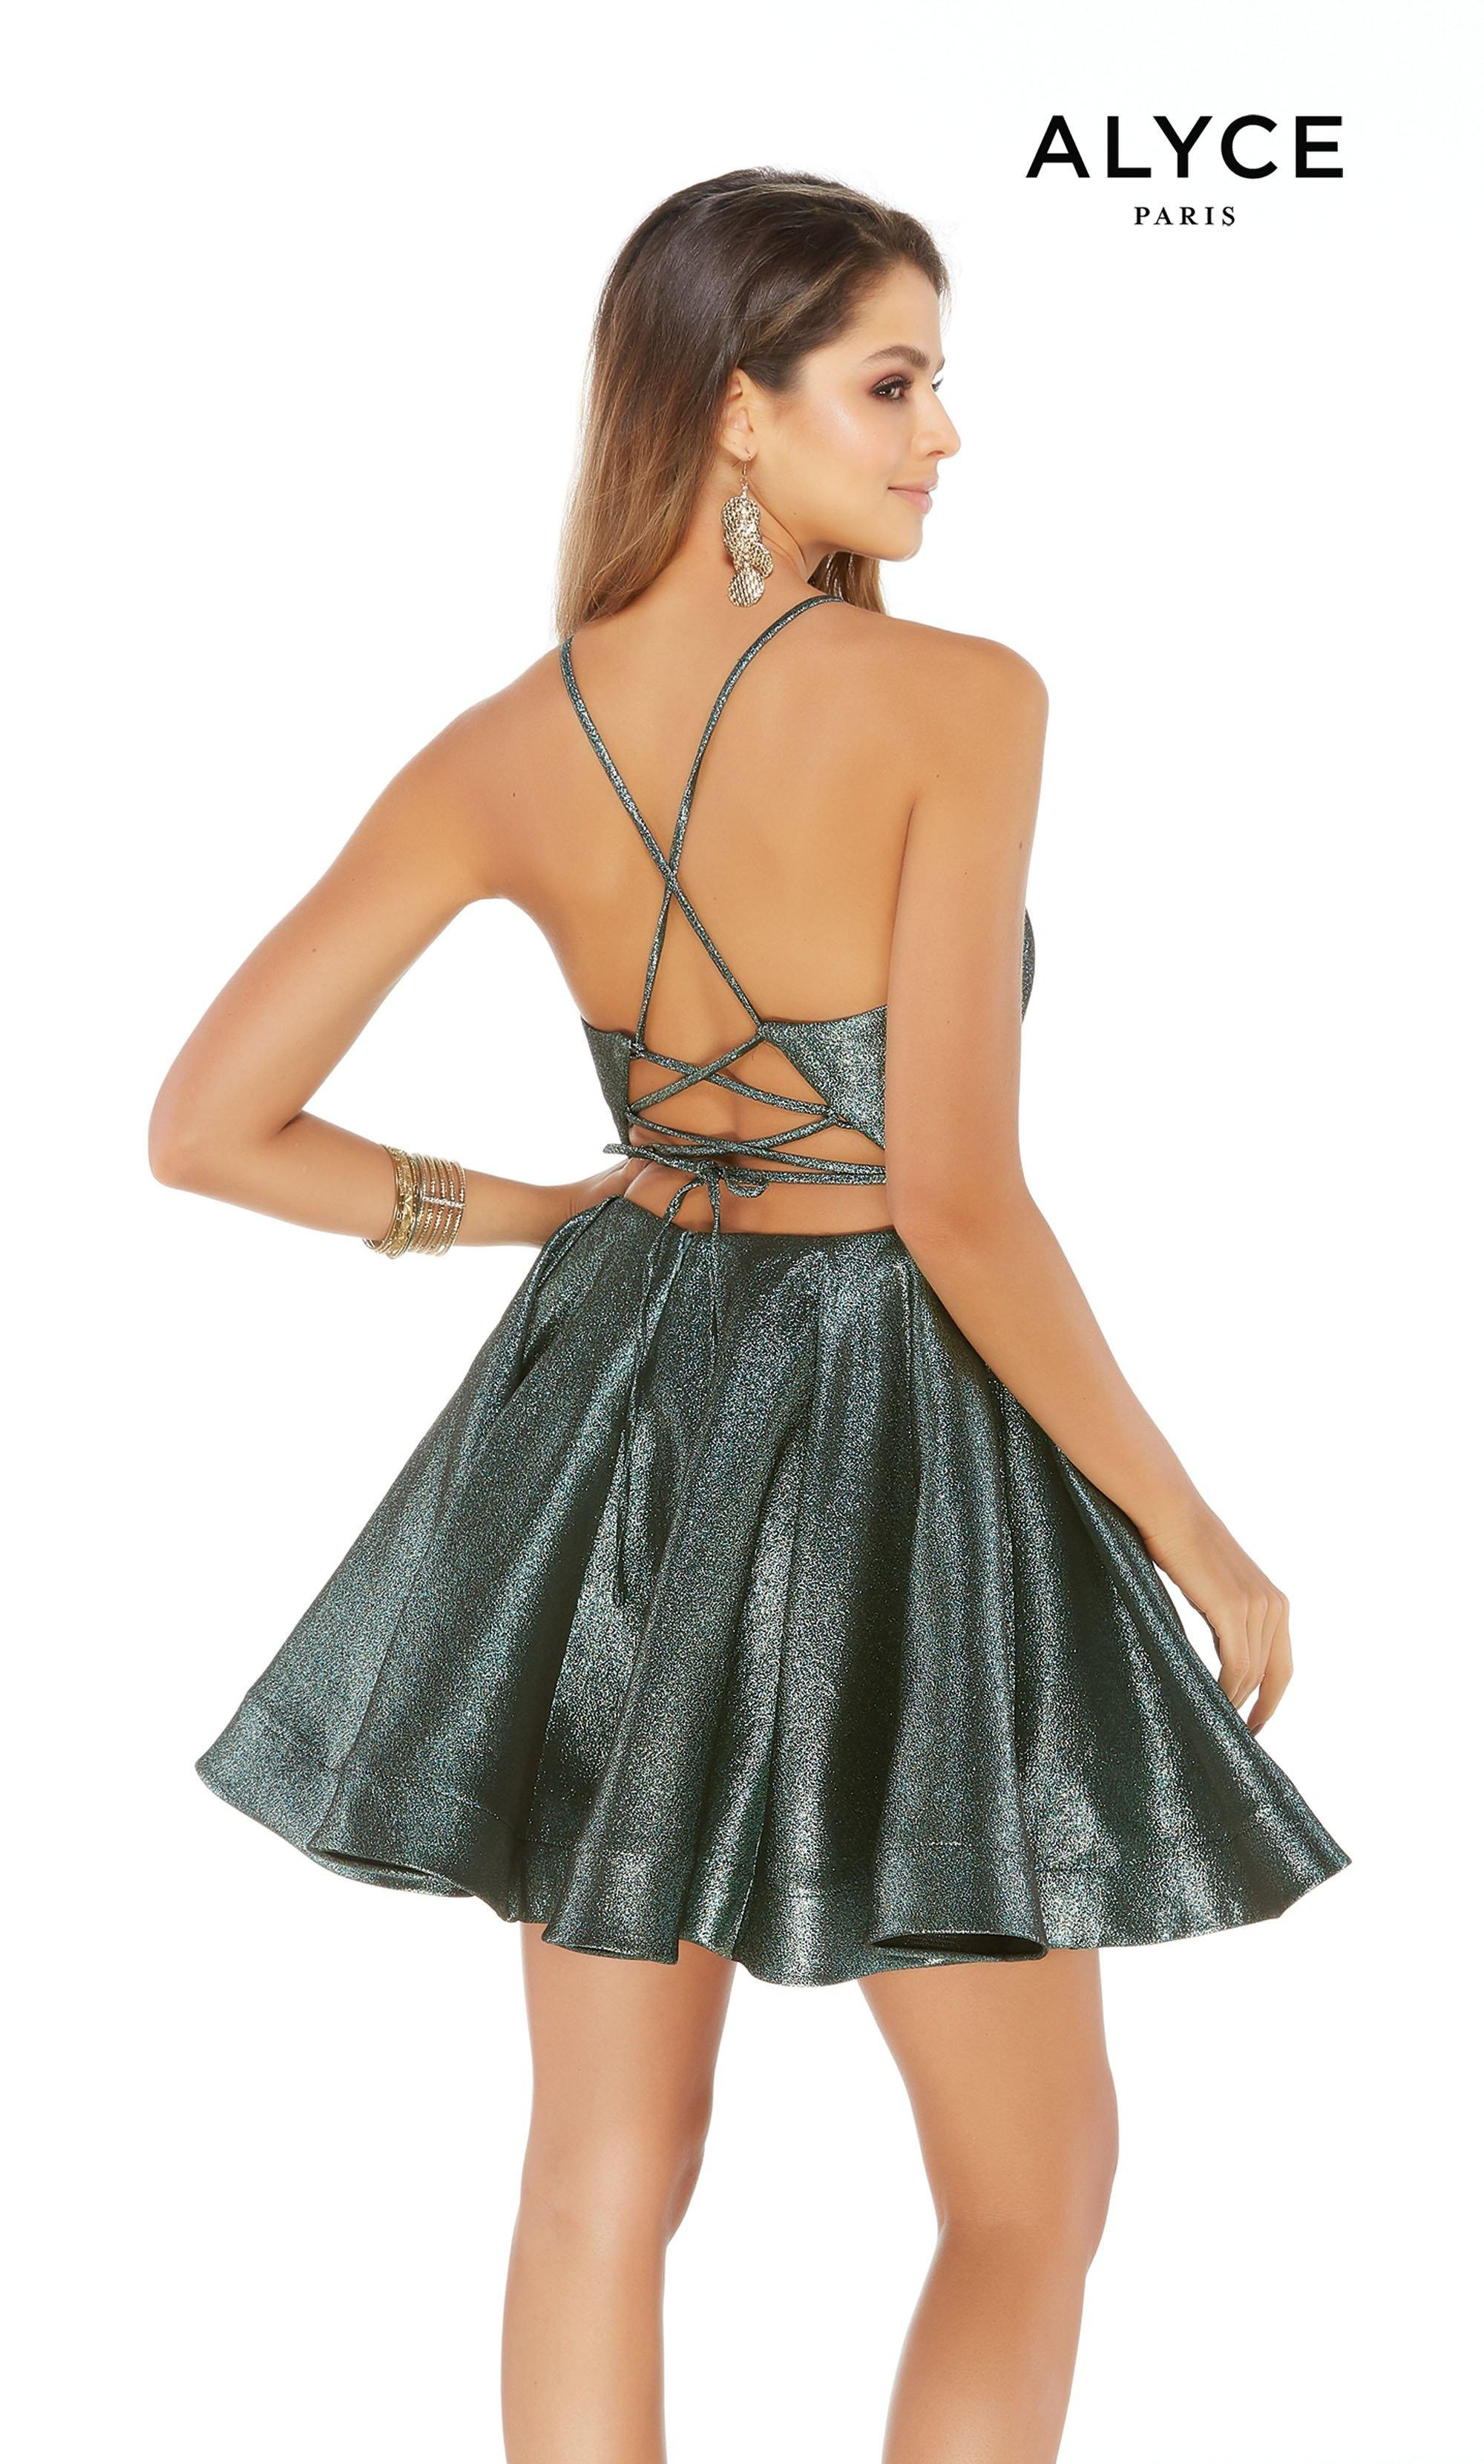 Short Metallic Sage glitter party dress with a halter neckline, beaded waist, and pockets